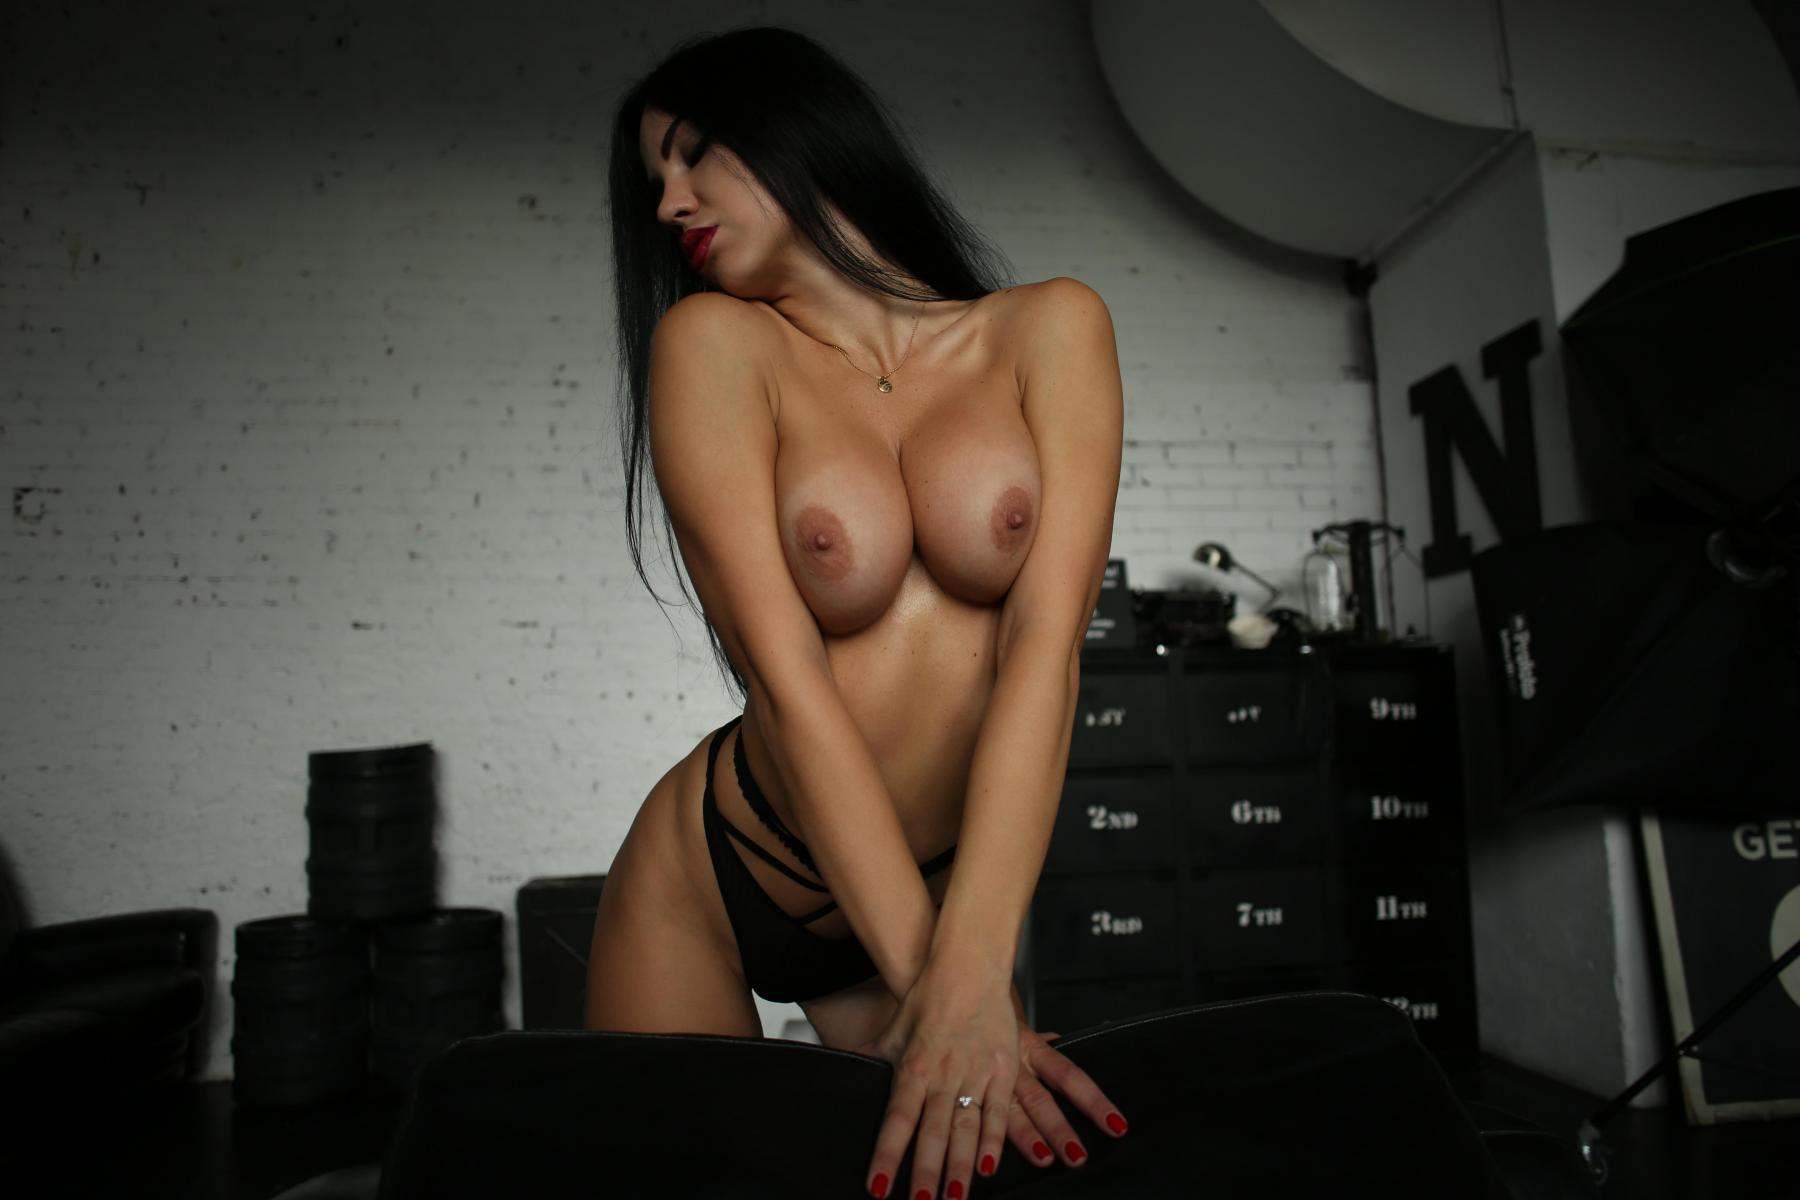 Yana Sexy Brunette's Tits Porn OnlyFans Leaked Nudes 43